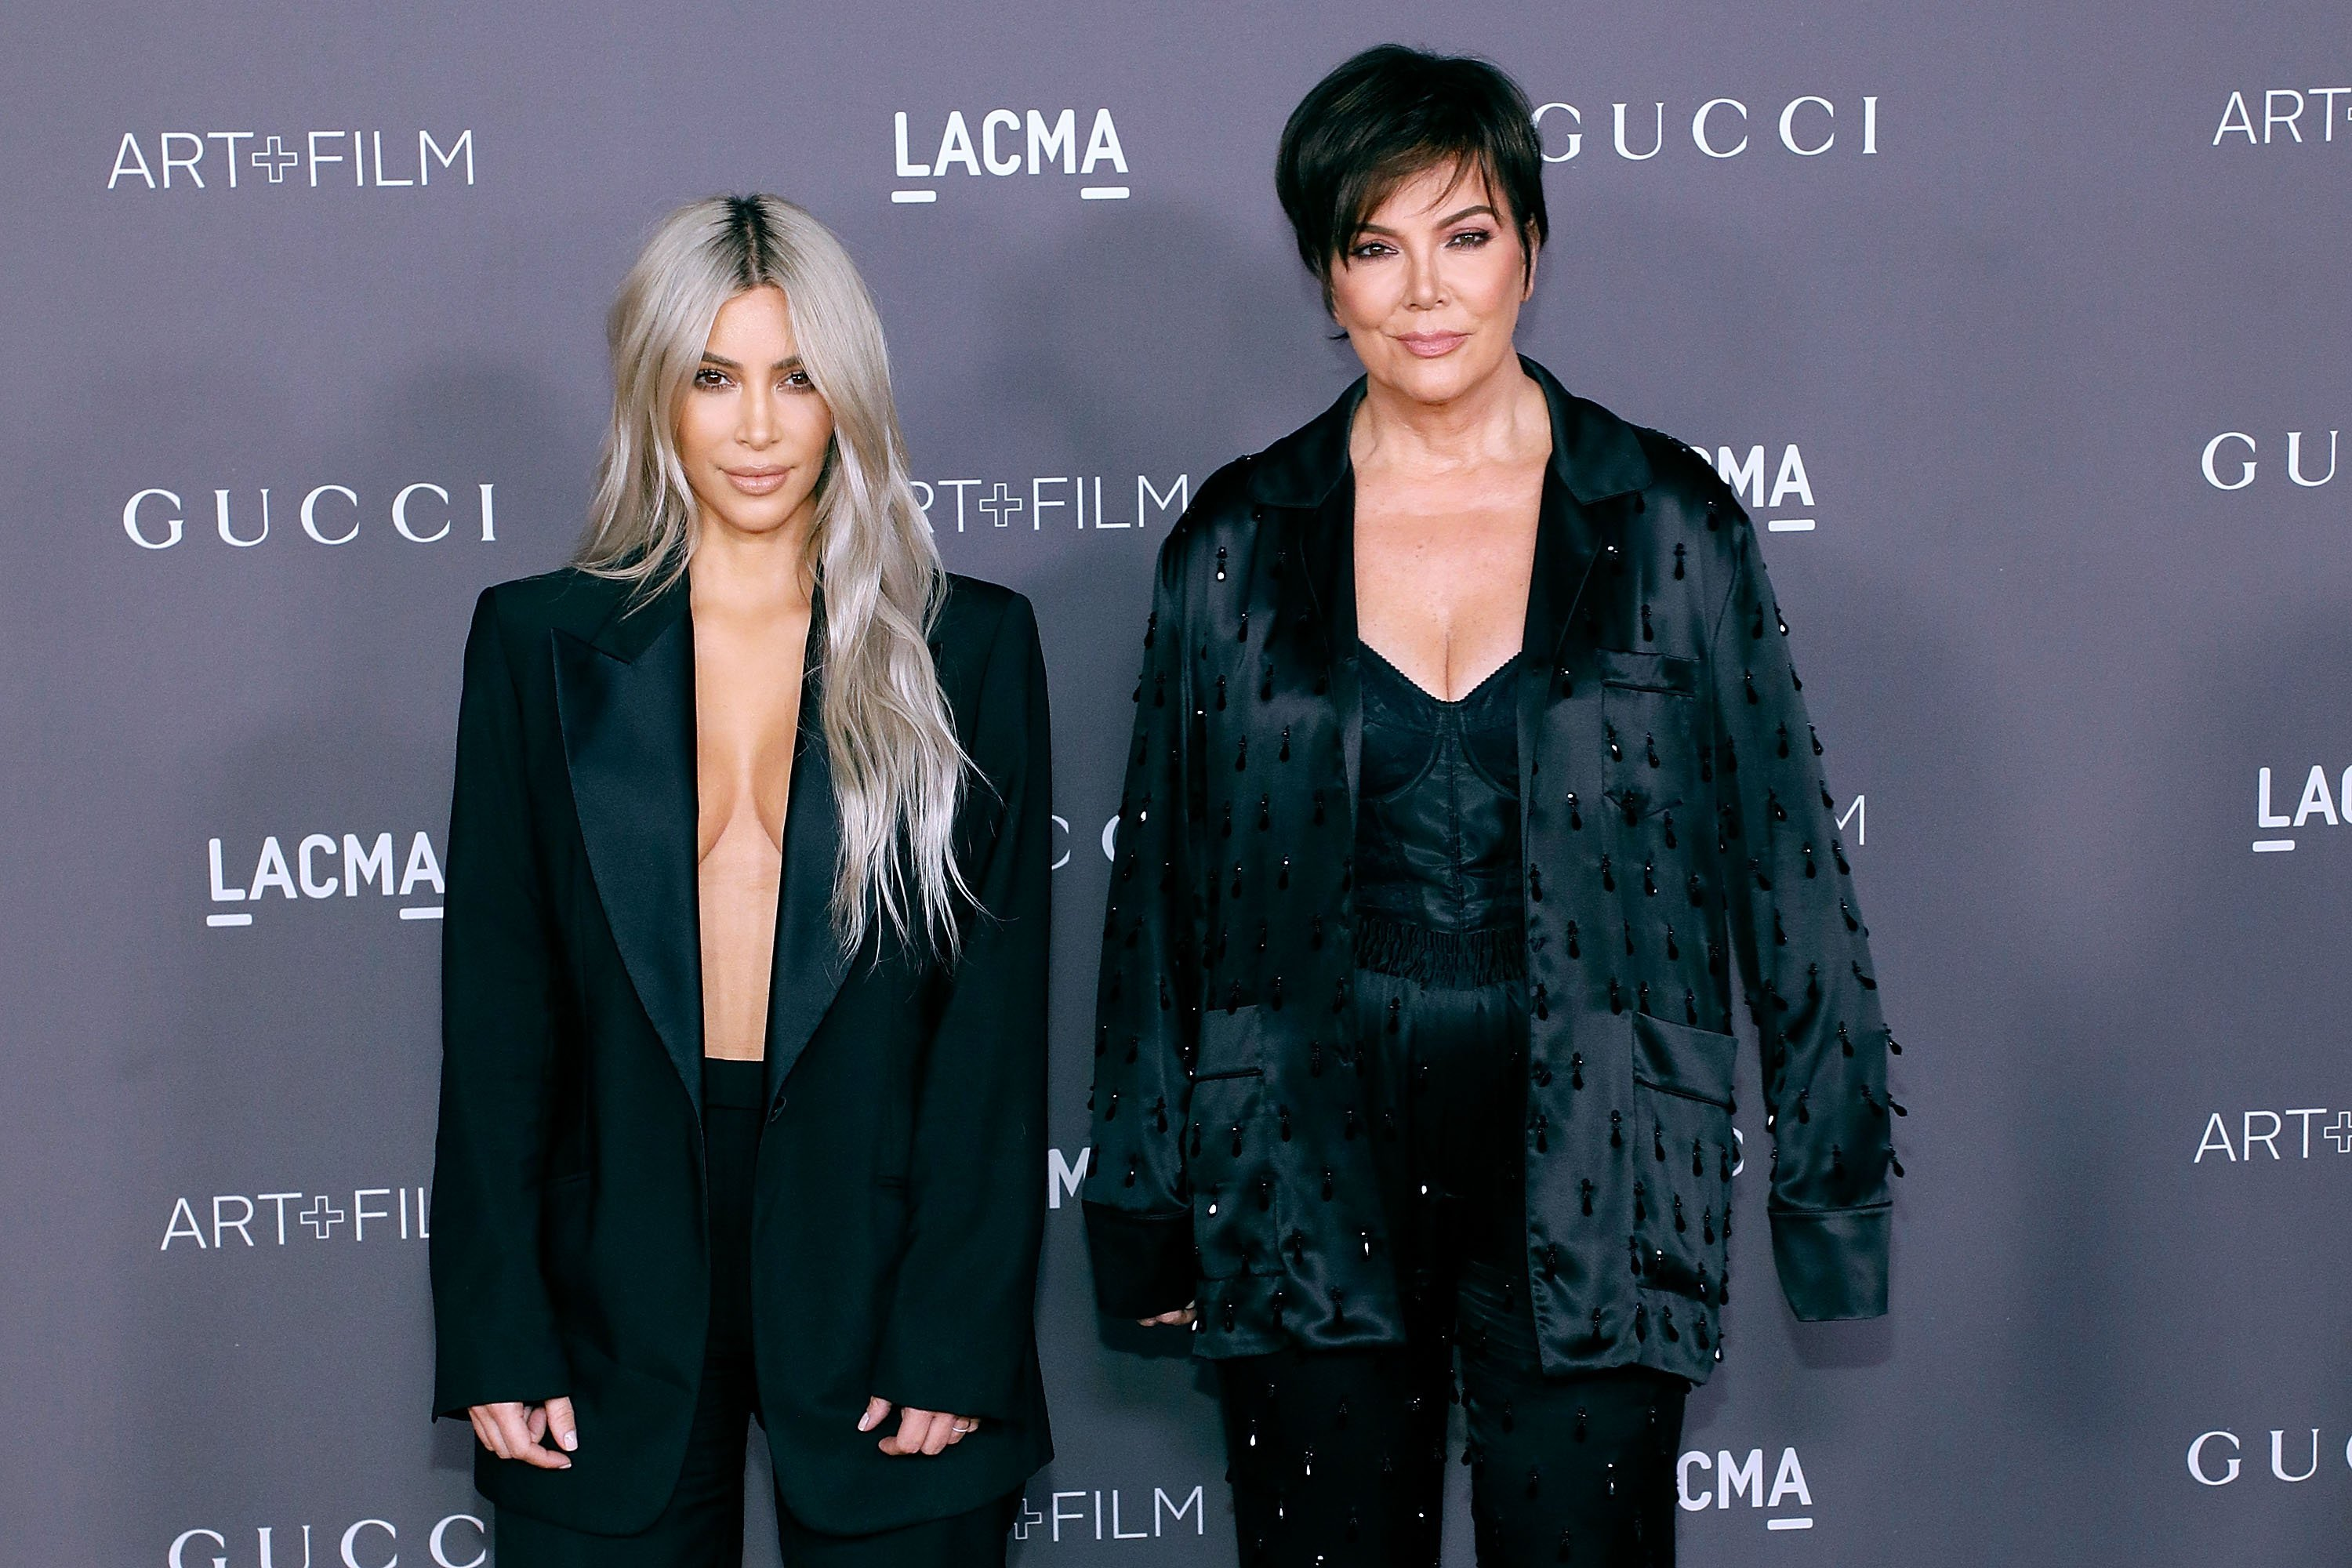 Kim Kardashian West and Kris Jenner attend the 2017 LACMA Art + Film Gala in Los Angeles, California on November 4, 2017 | Photo: Getty Images